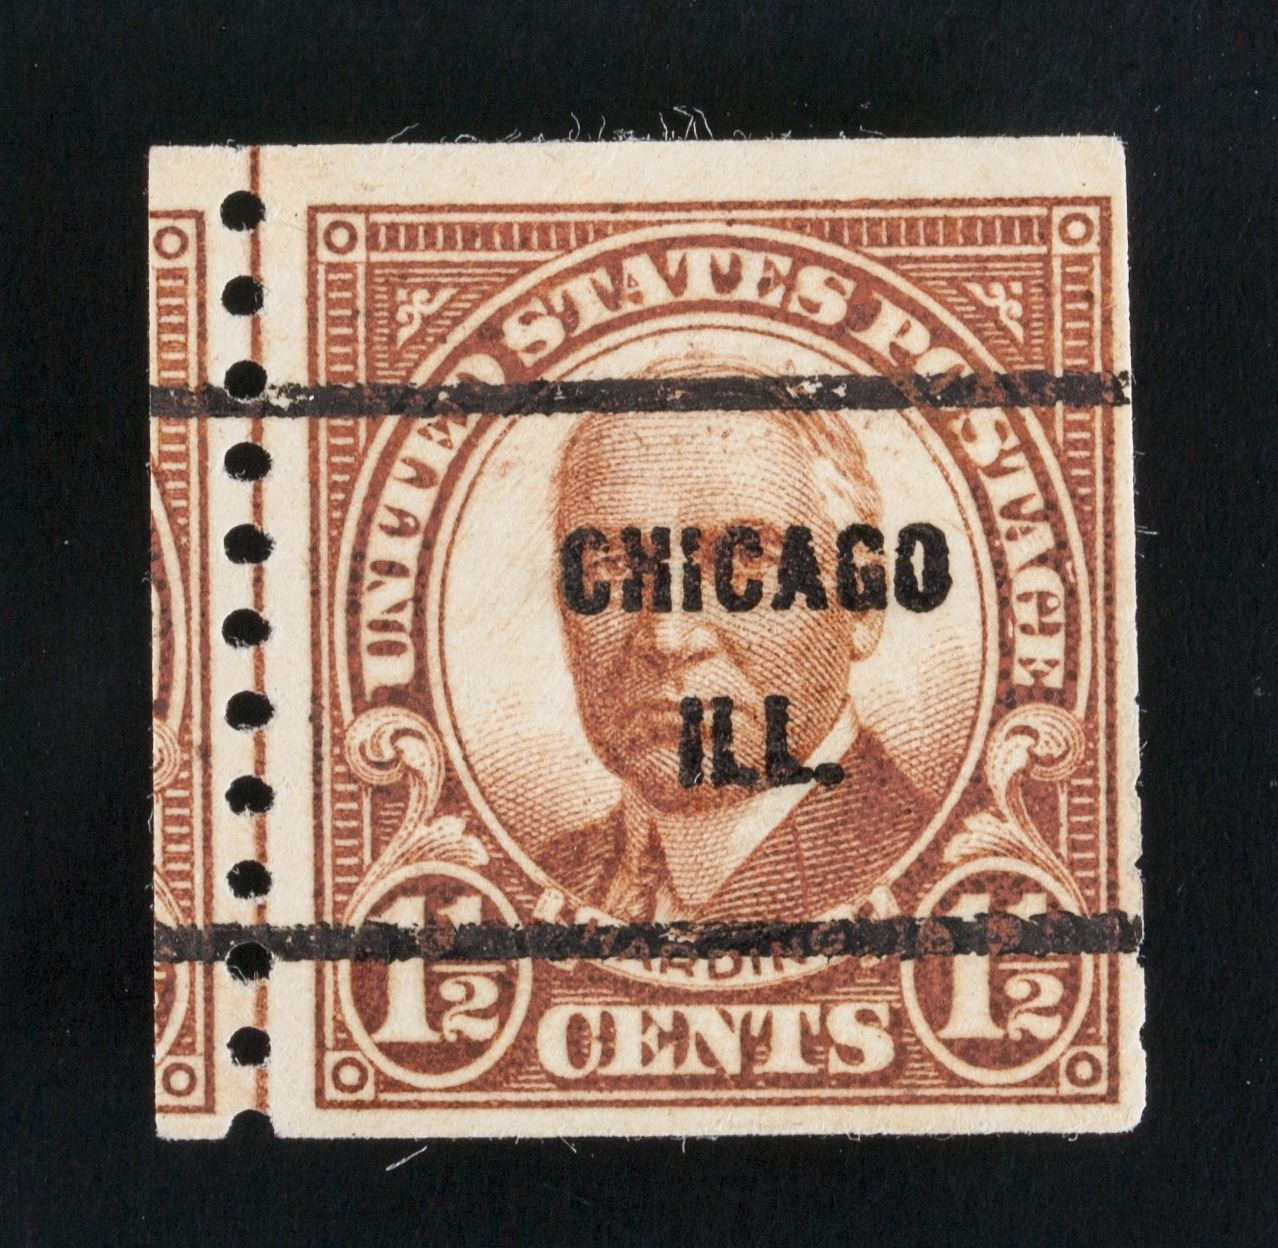 1930 US Harding 1 2 Cents Stamp Wrong Cut